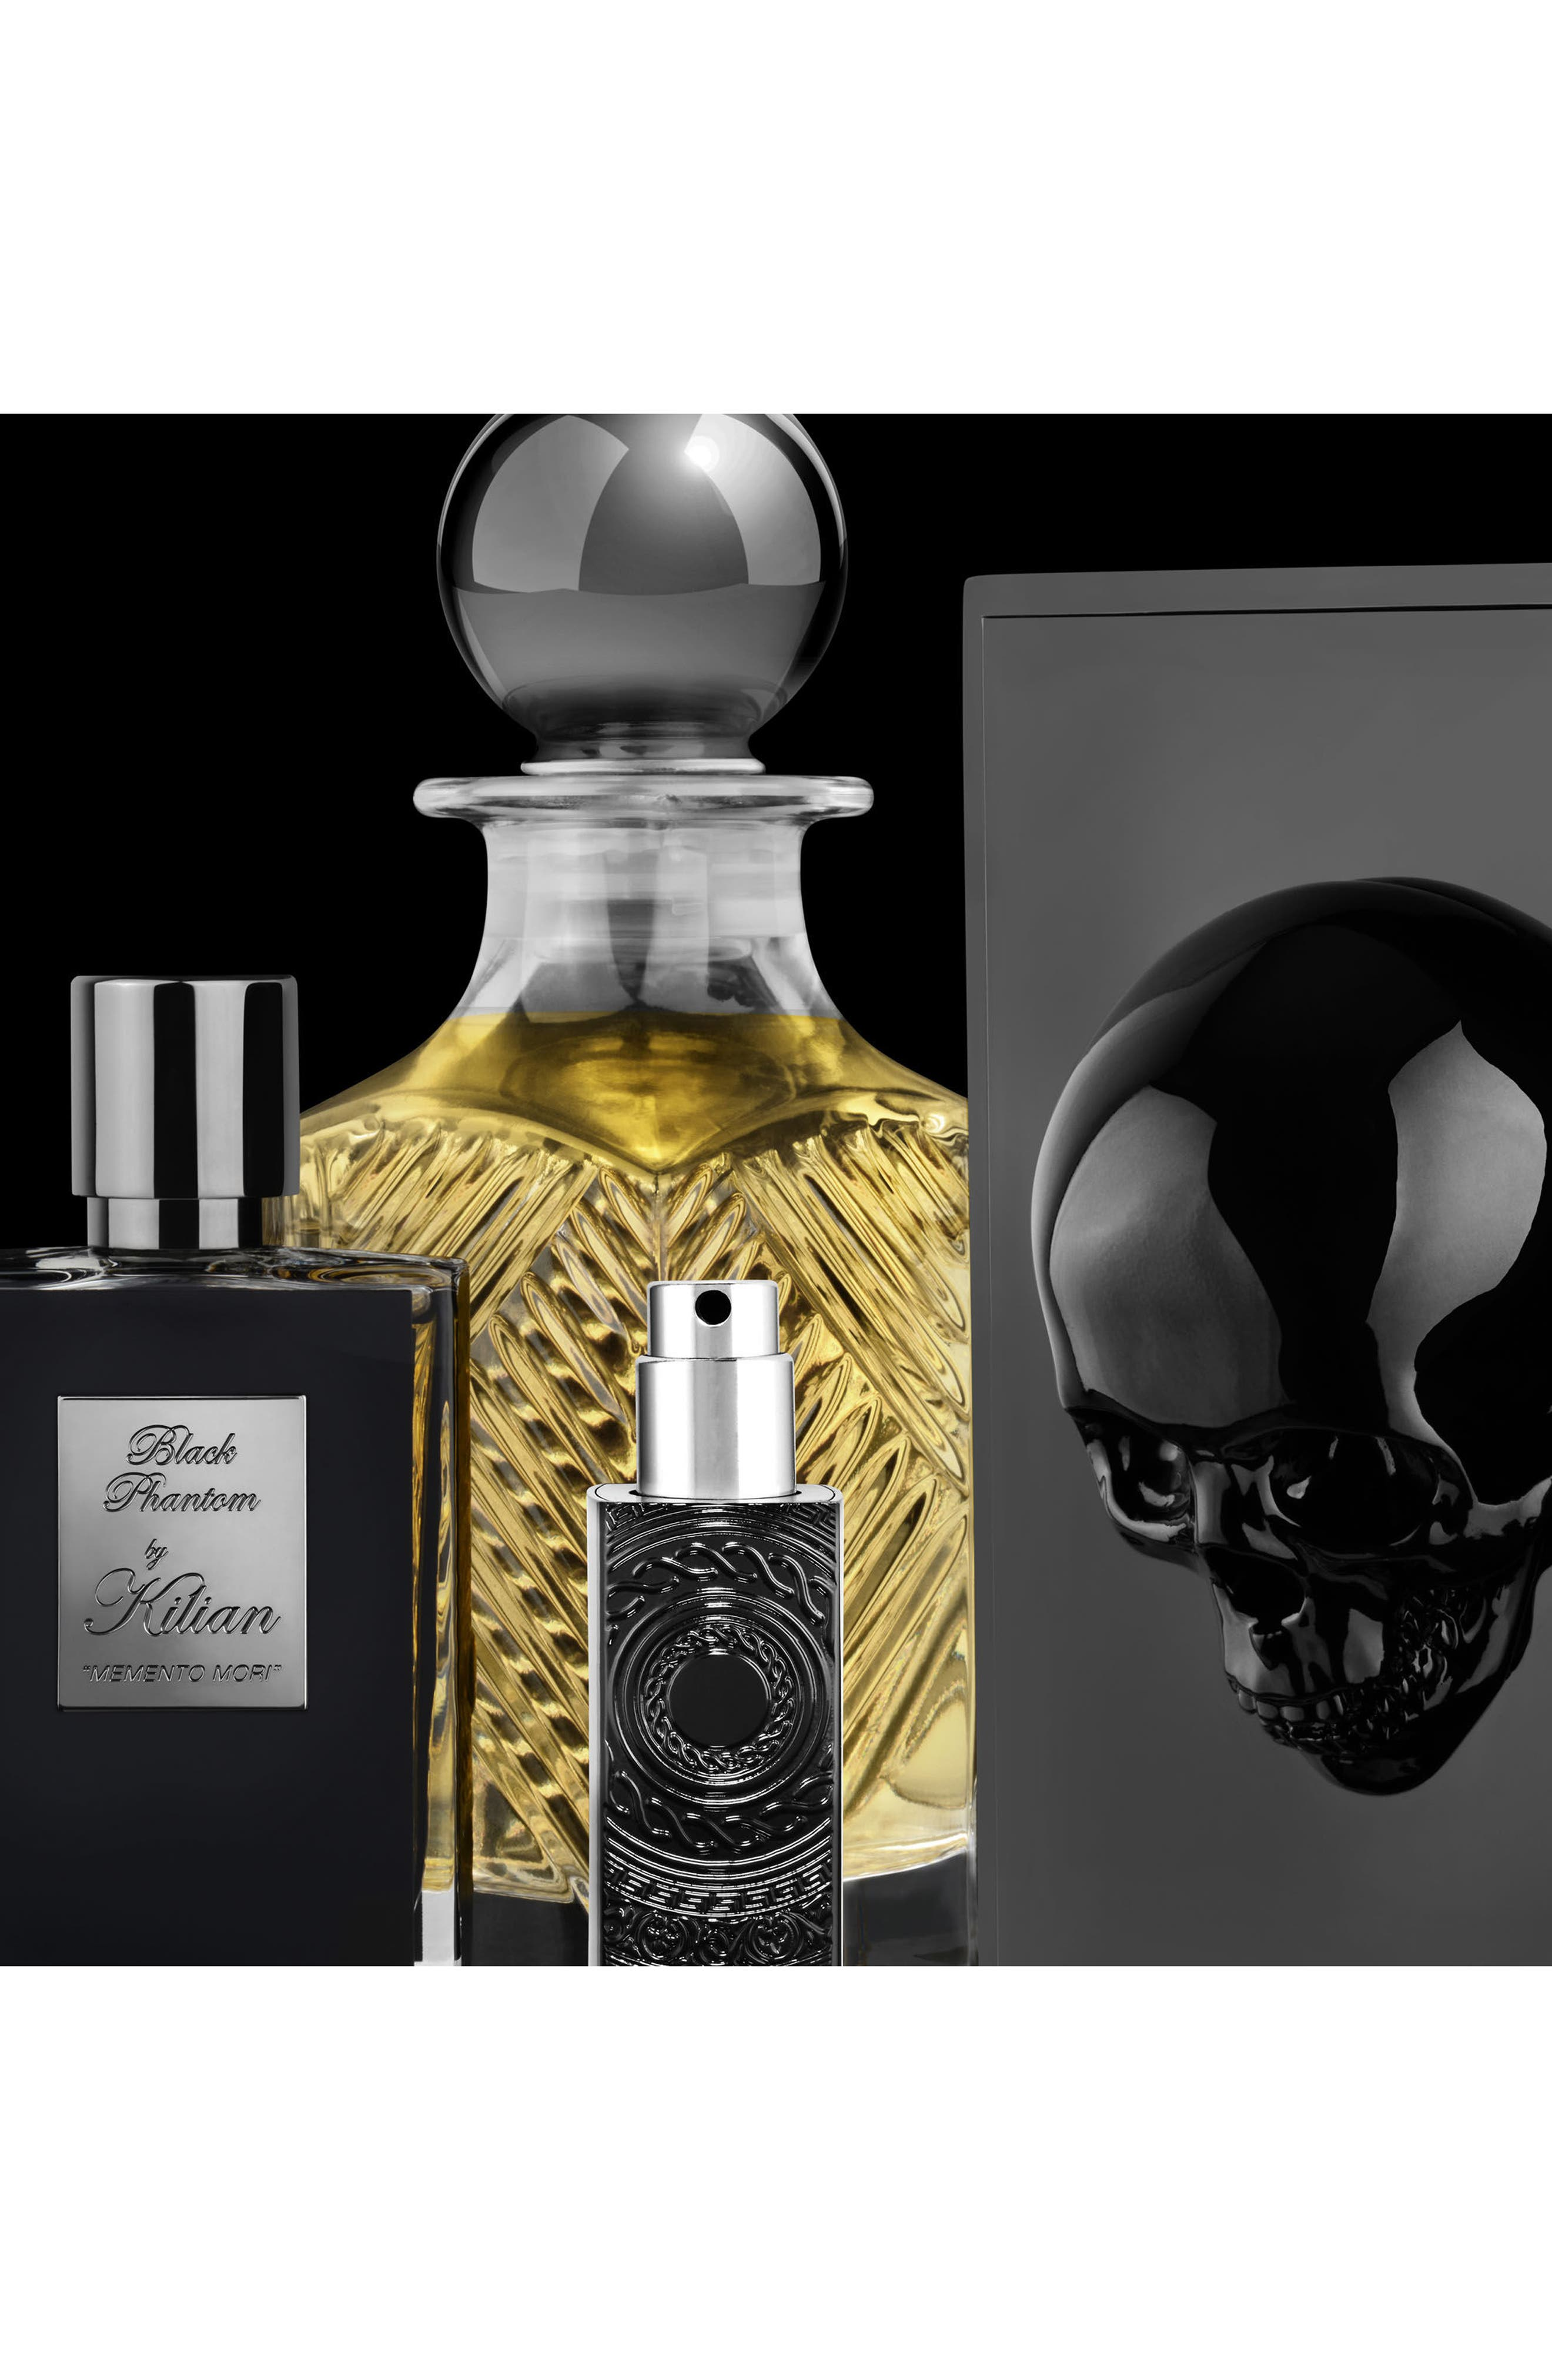 Black Phantom Memento Mori Eau de Parfum Travel Spray Set,                             Alternate thumbnail 3, color,                             NO COLOR